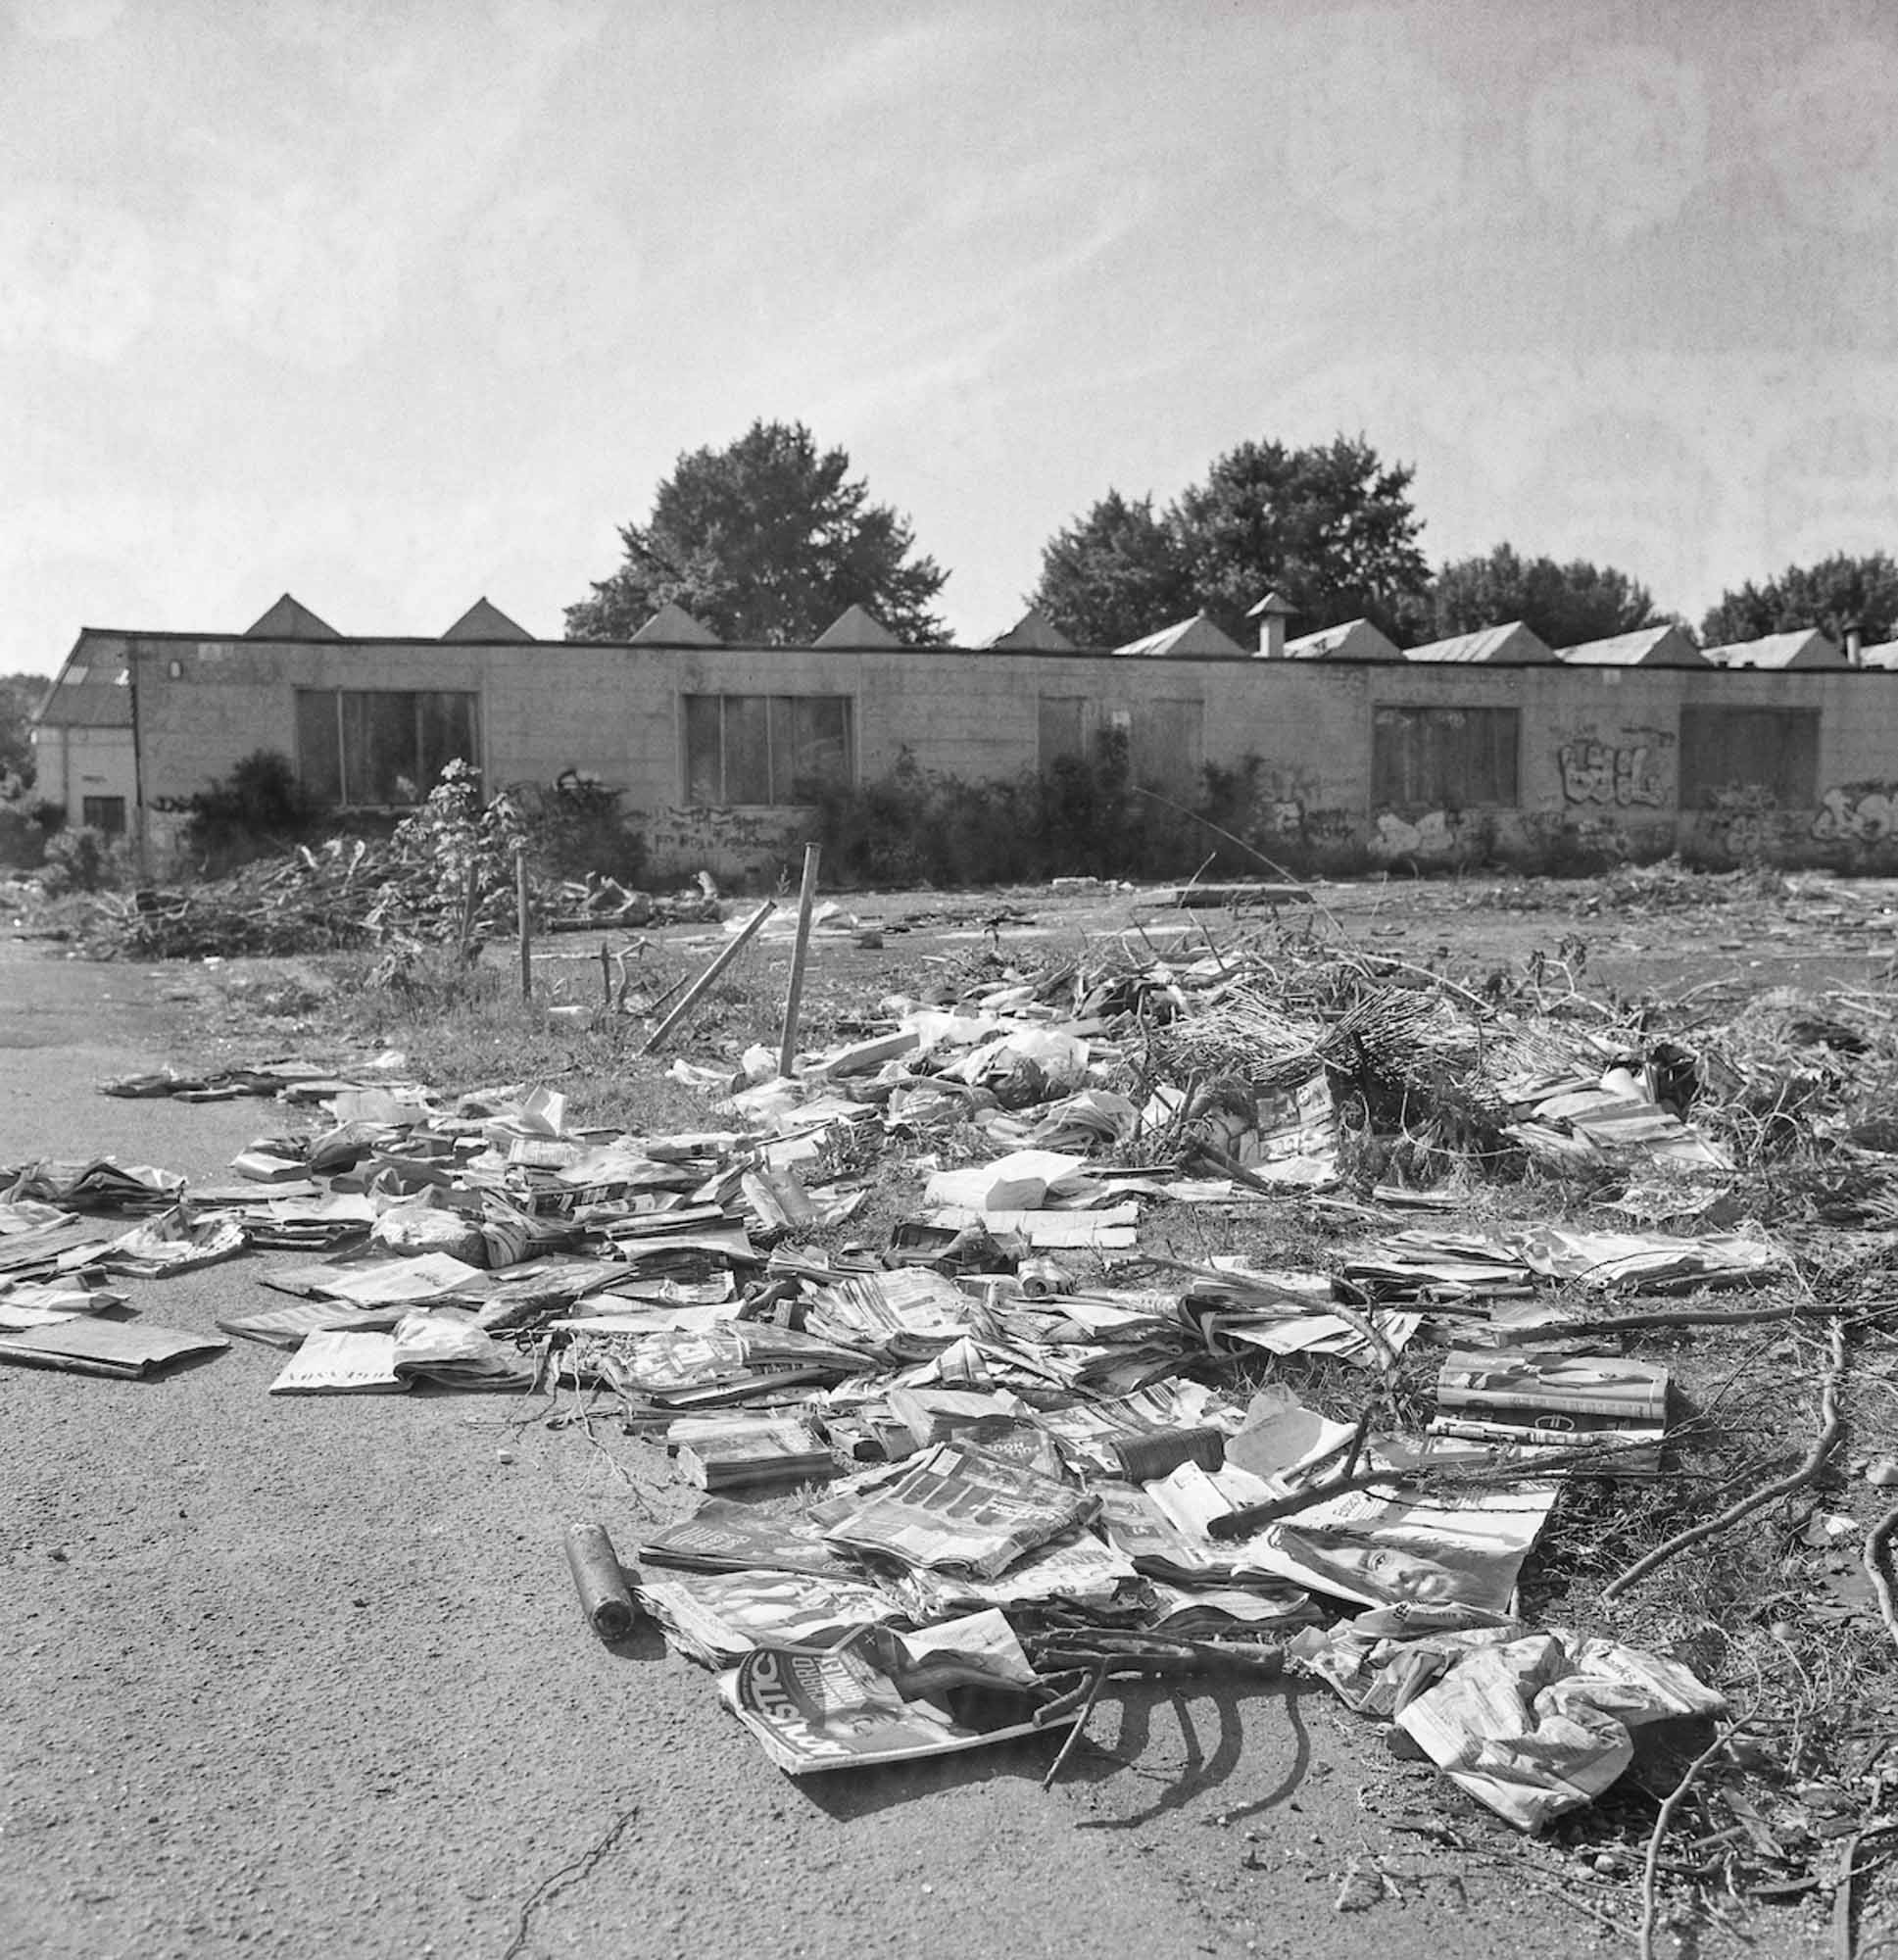 Books and magazines, a favourite of the fly-tippers. May 2017, ILFORD FP4 PLUS